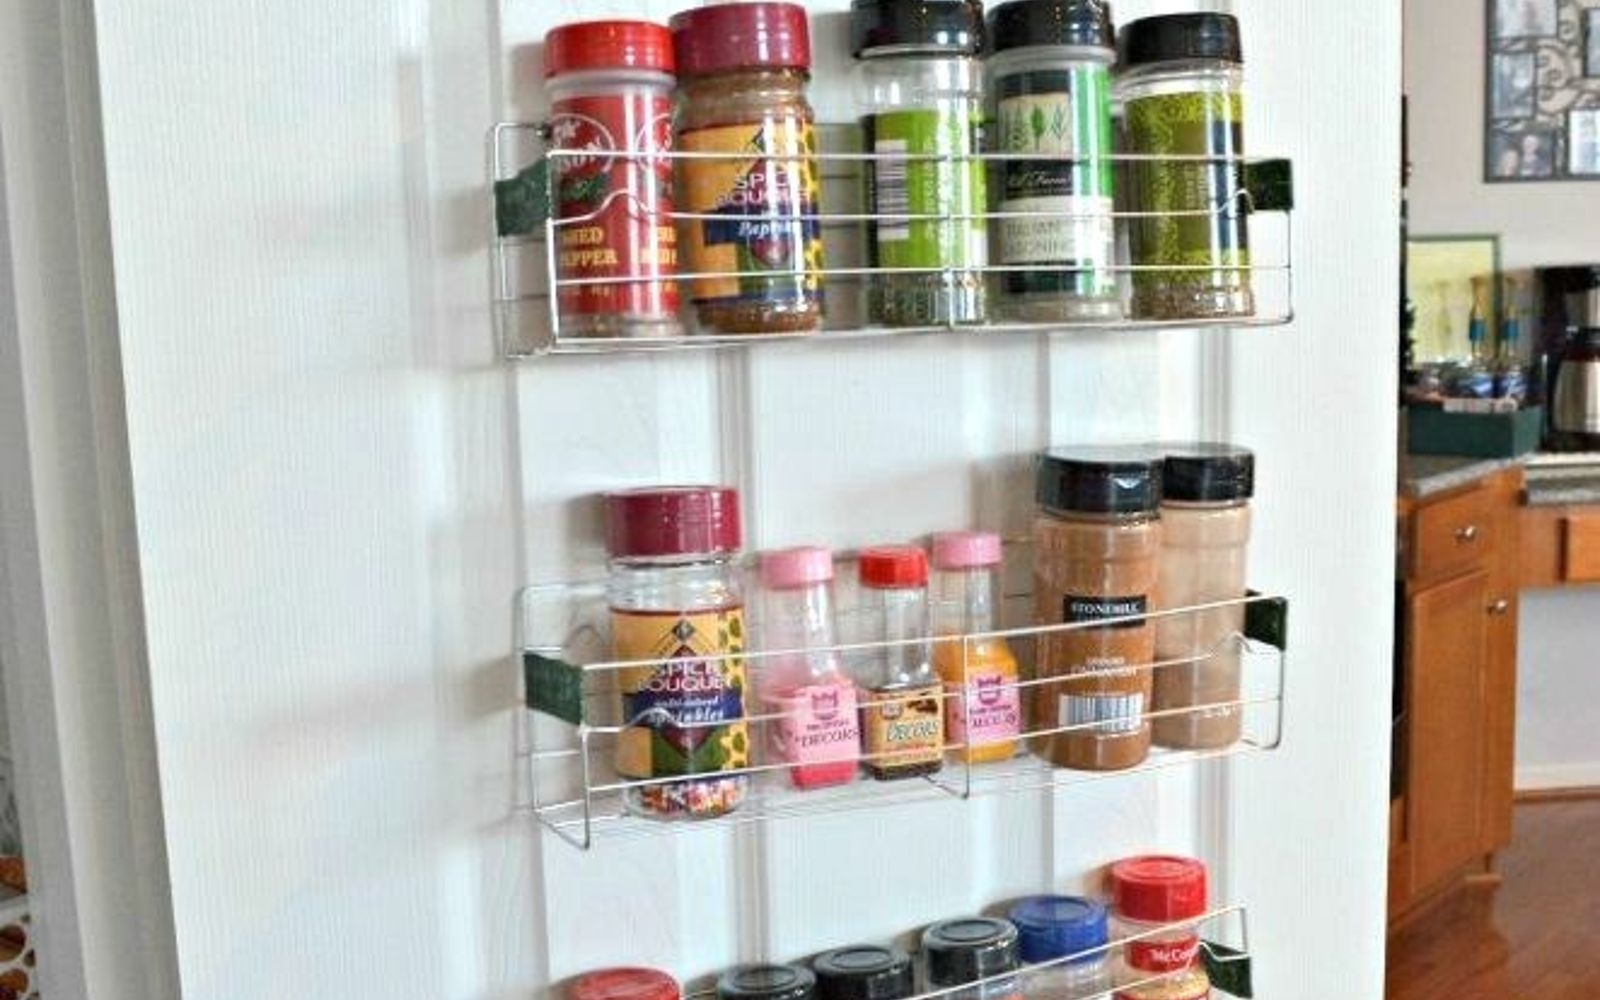 s the best organizing ideas of 2015 that you should do this year too, organizing, Storing Spices in a 1 Rack